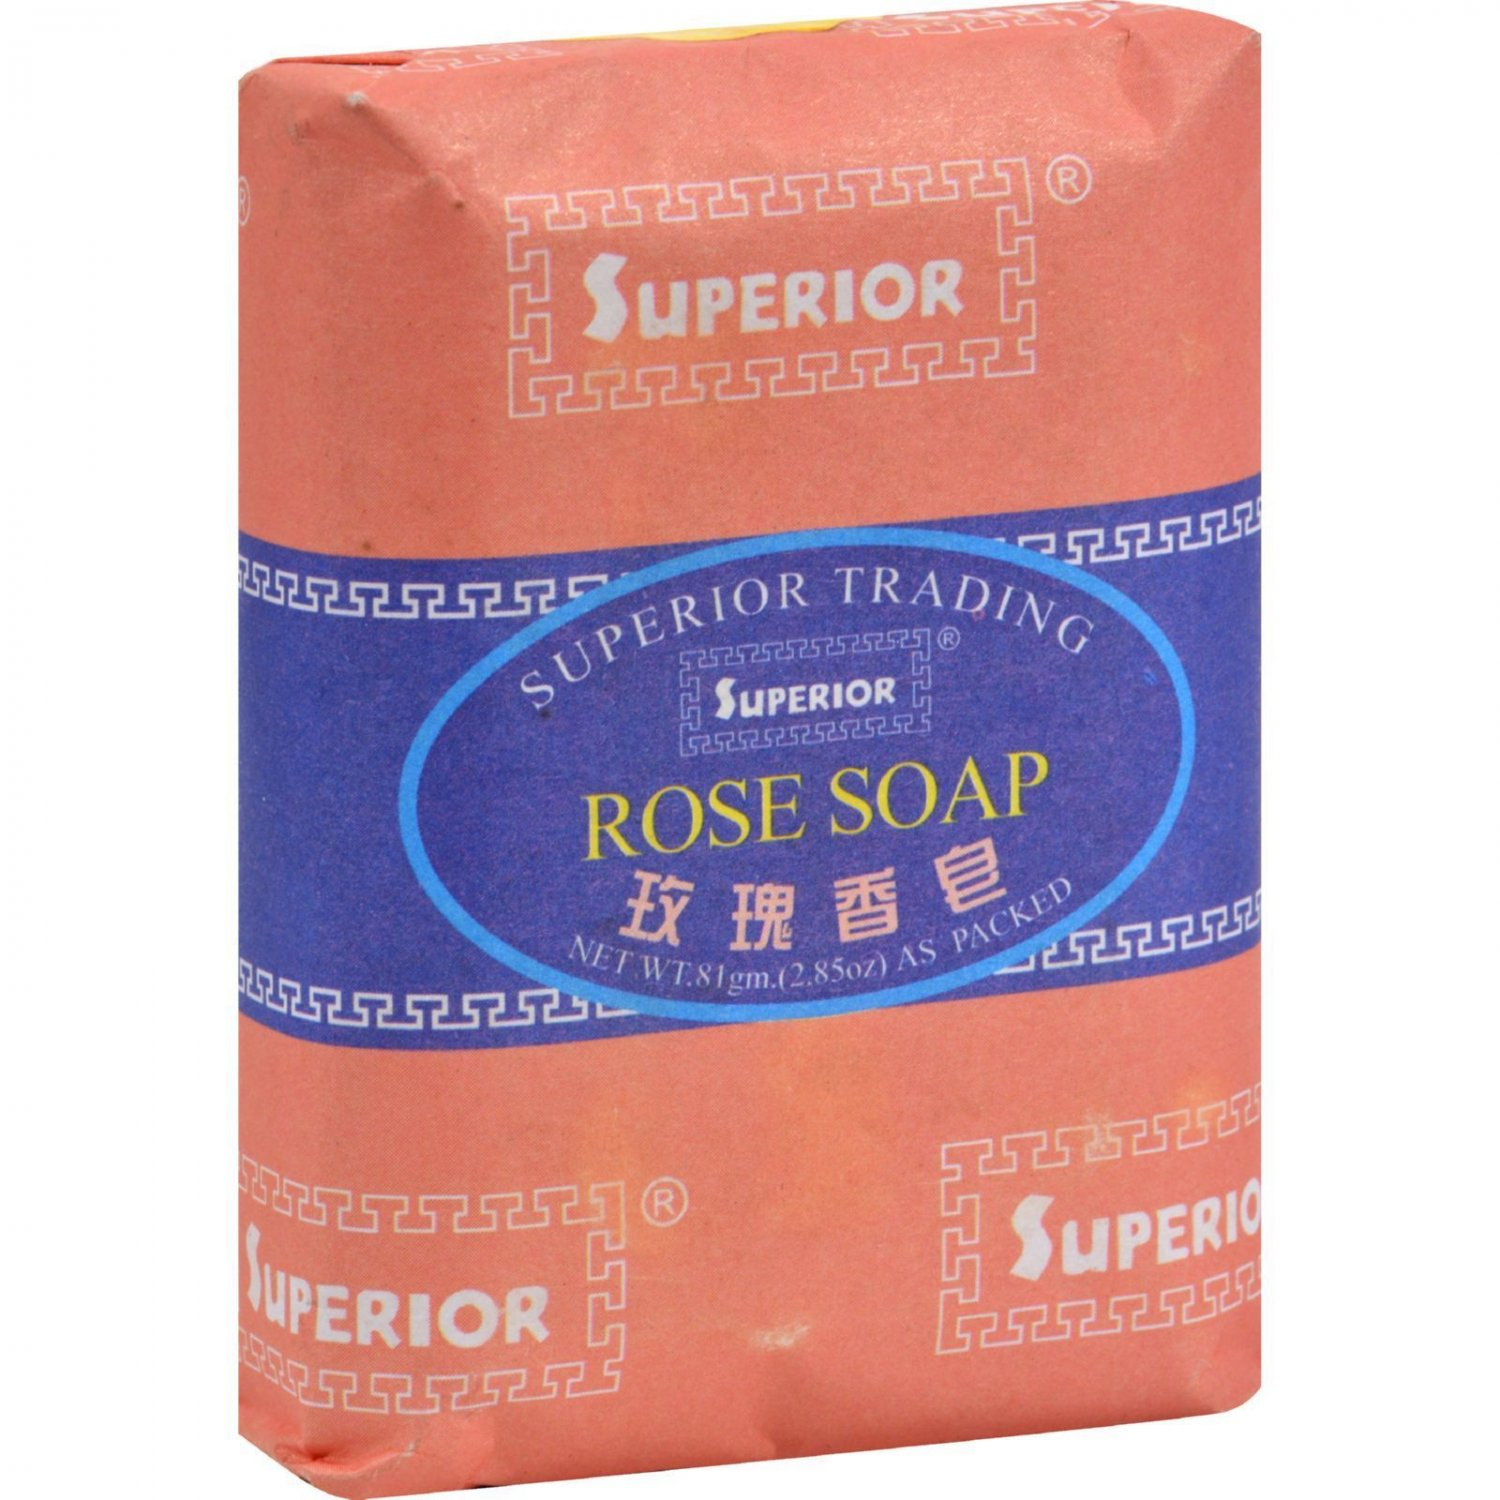 Superior Bee and Flower Rose Soap - 2.85 oz